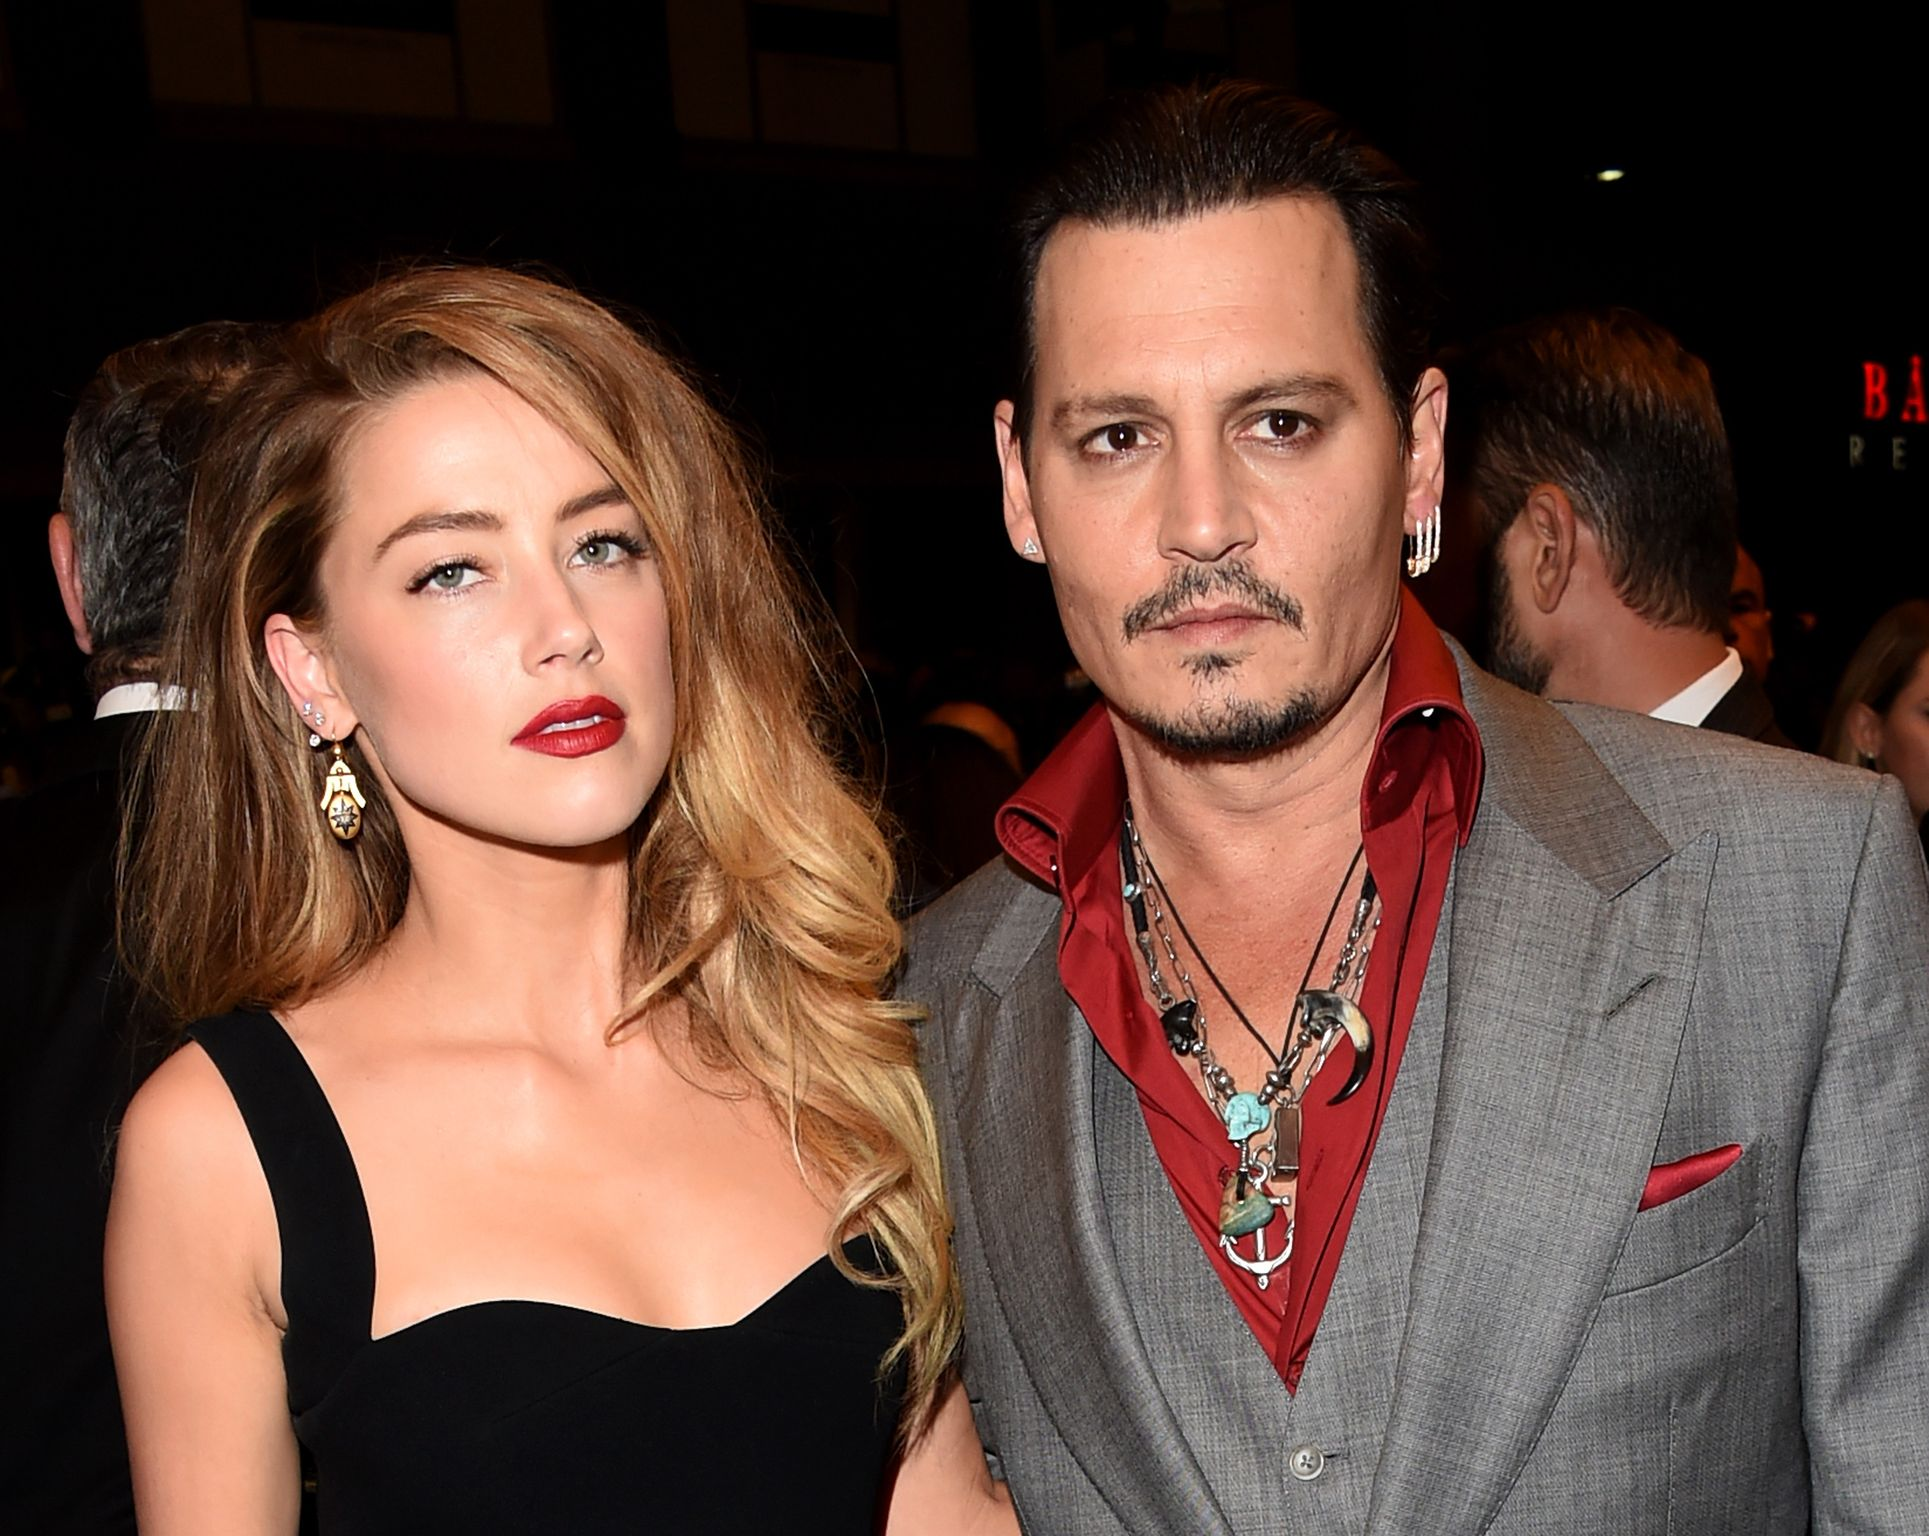 Johnny Depp and Amber Heard didn't stay married for too long / Getty Images